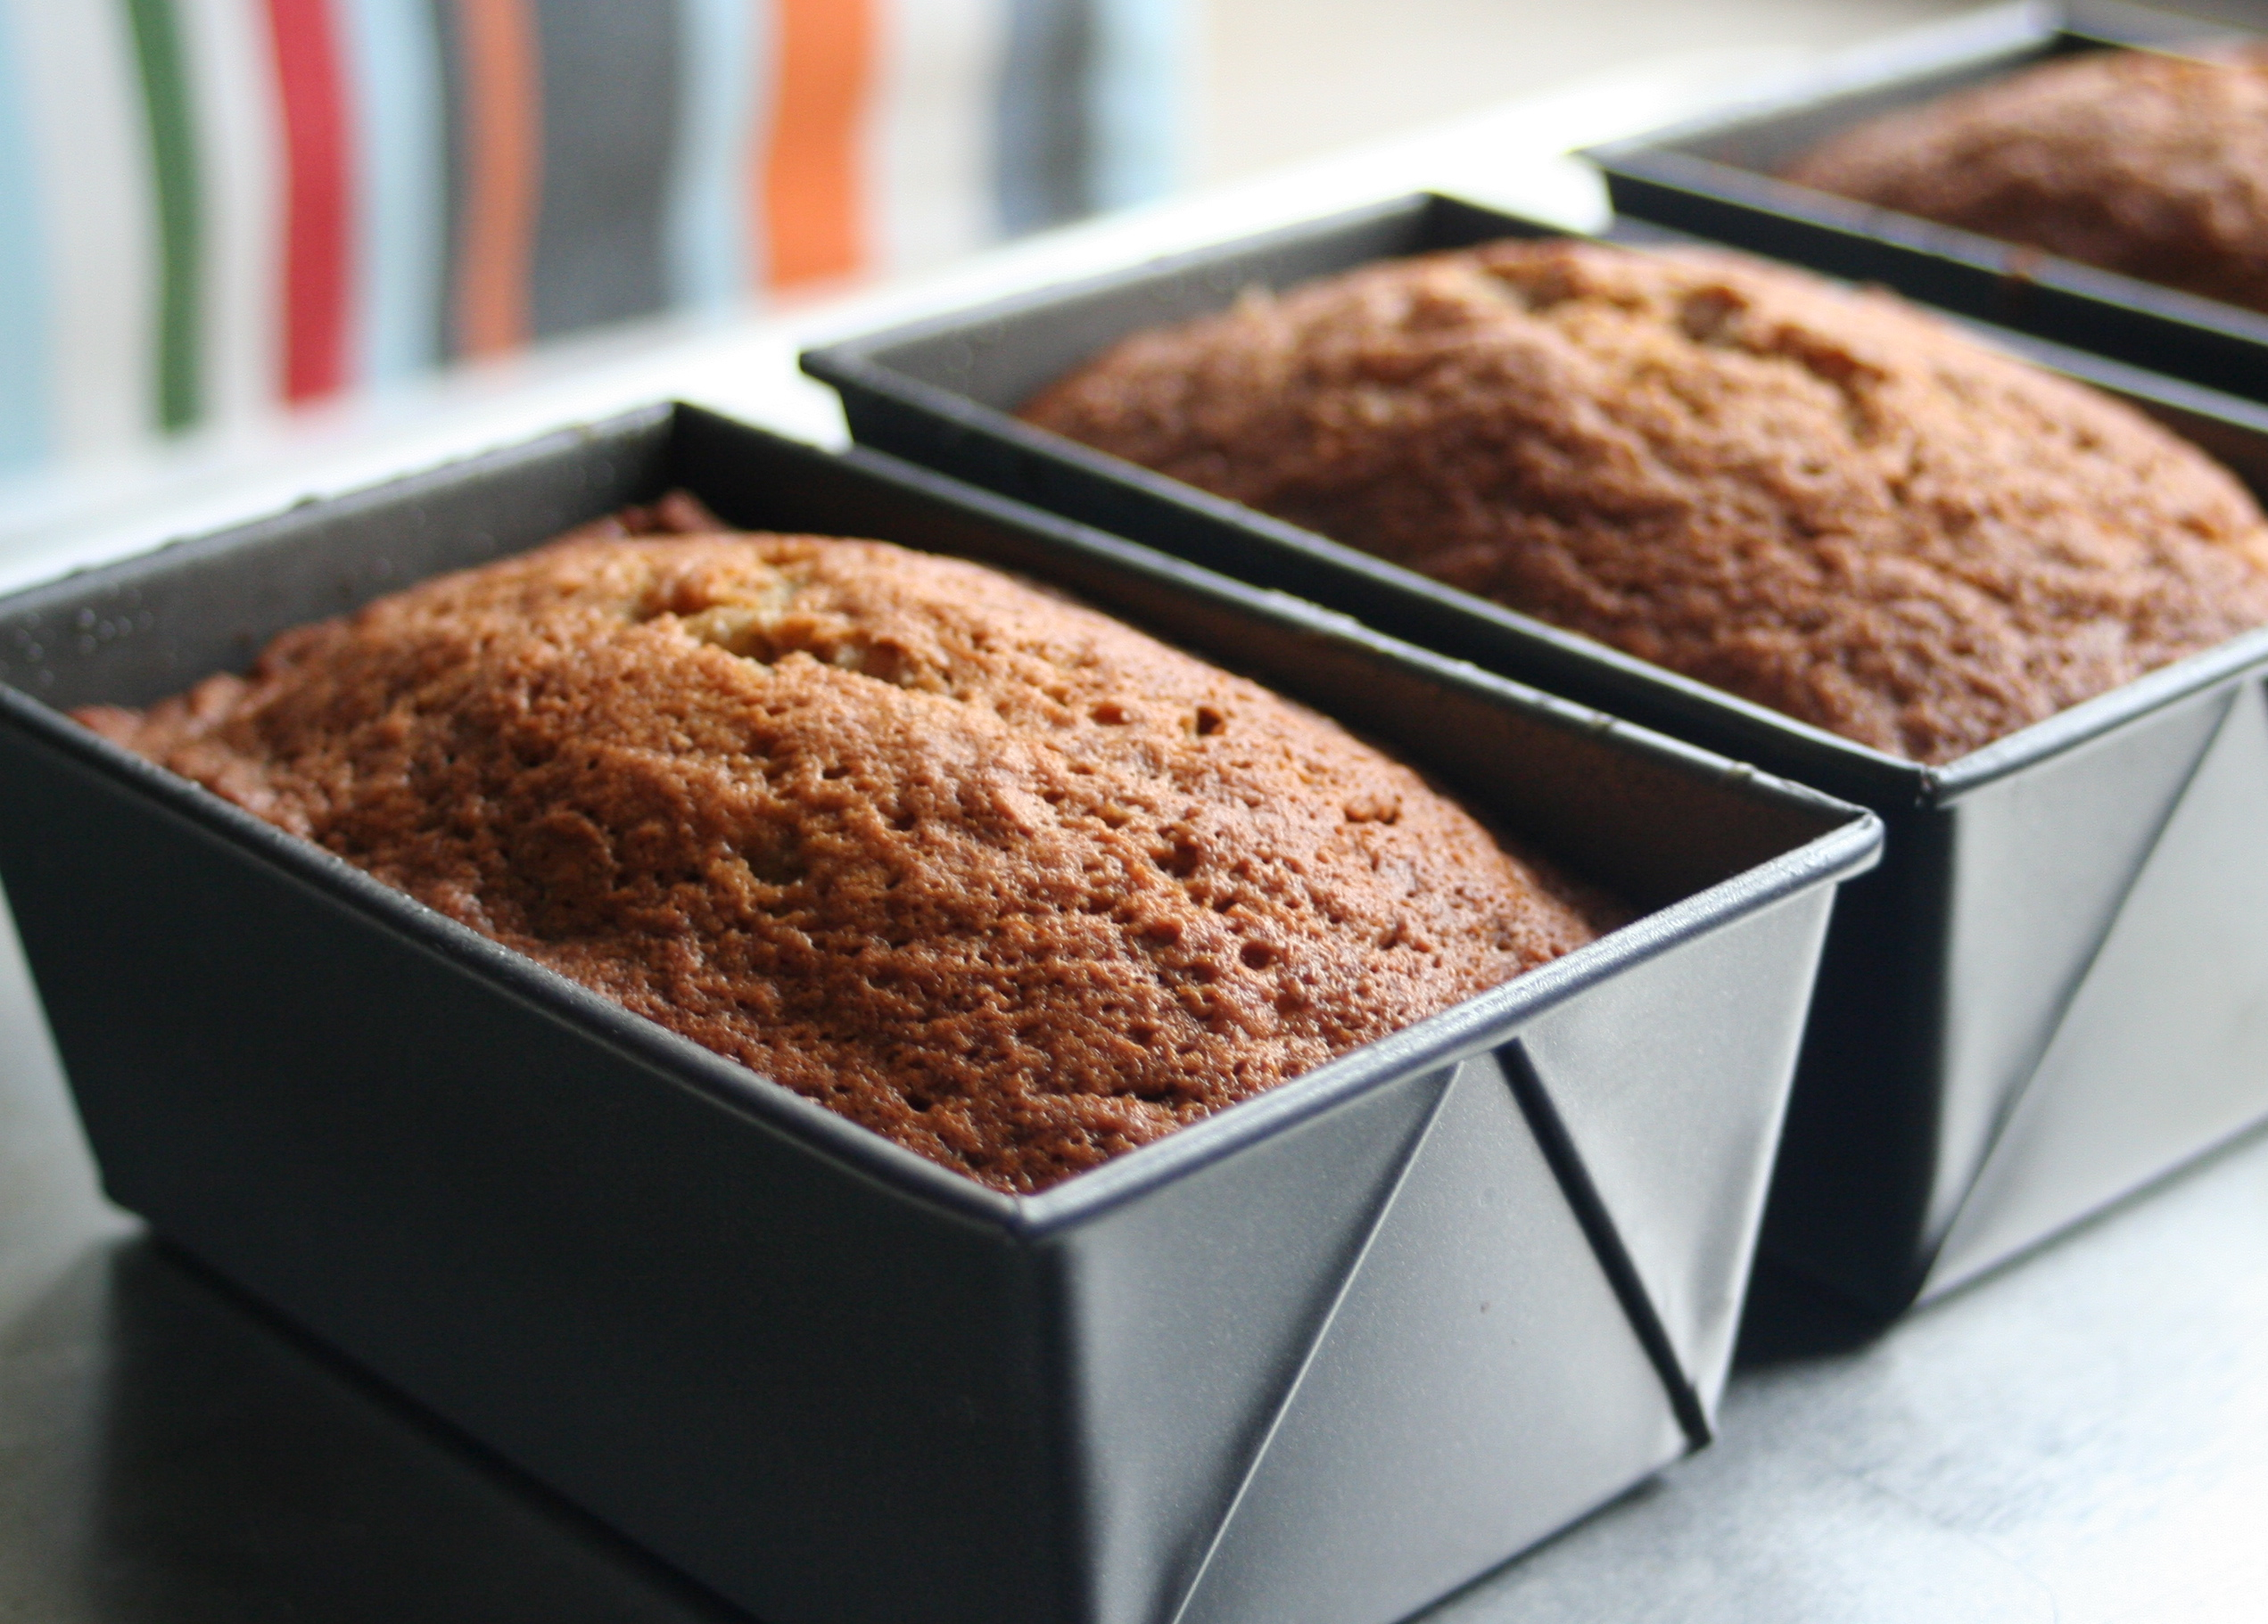 Banana Loaf Cake With Chocolate Chips